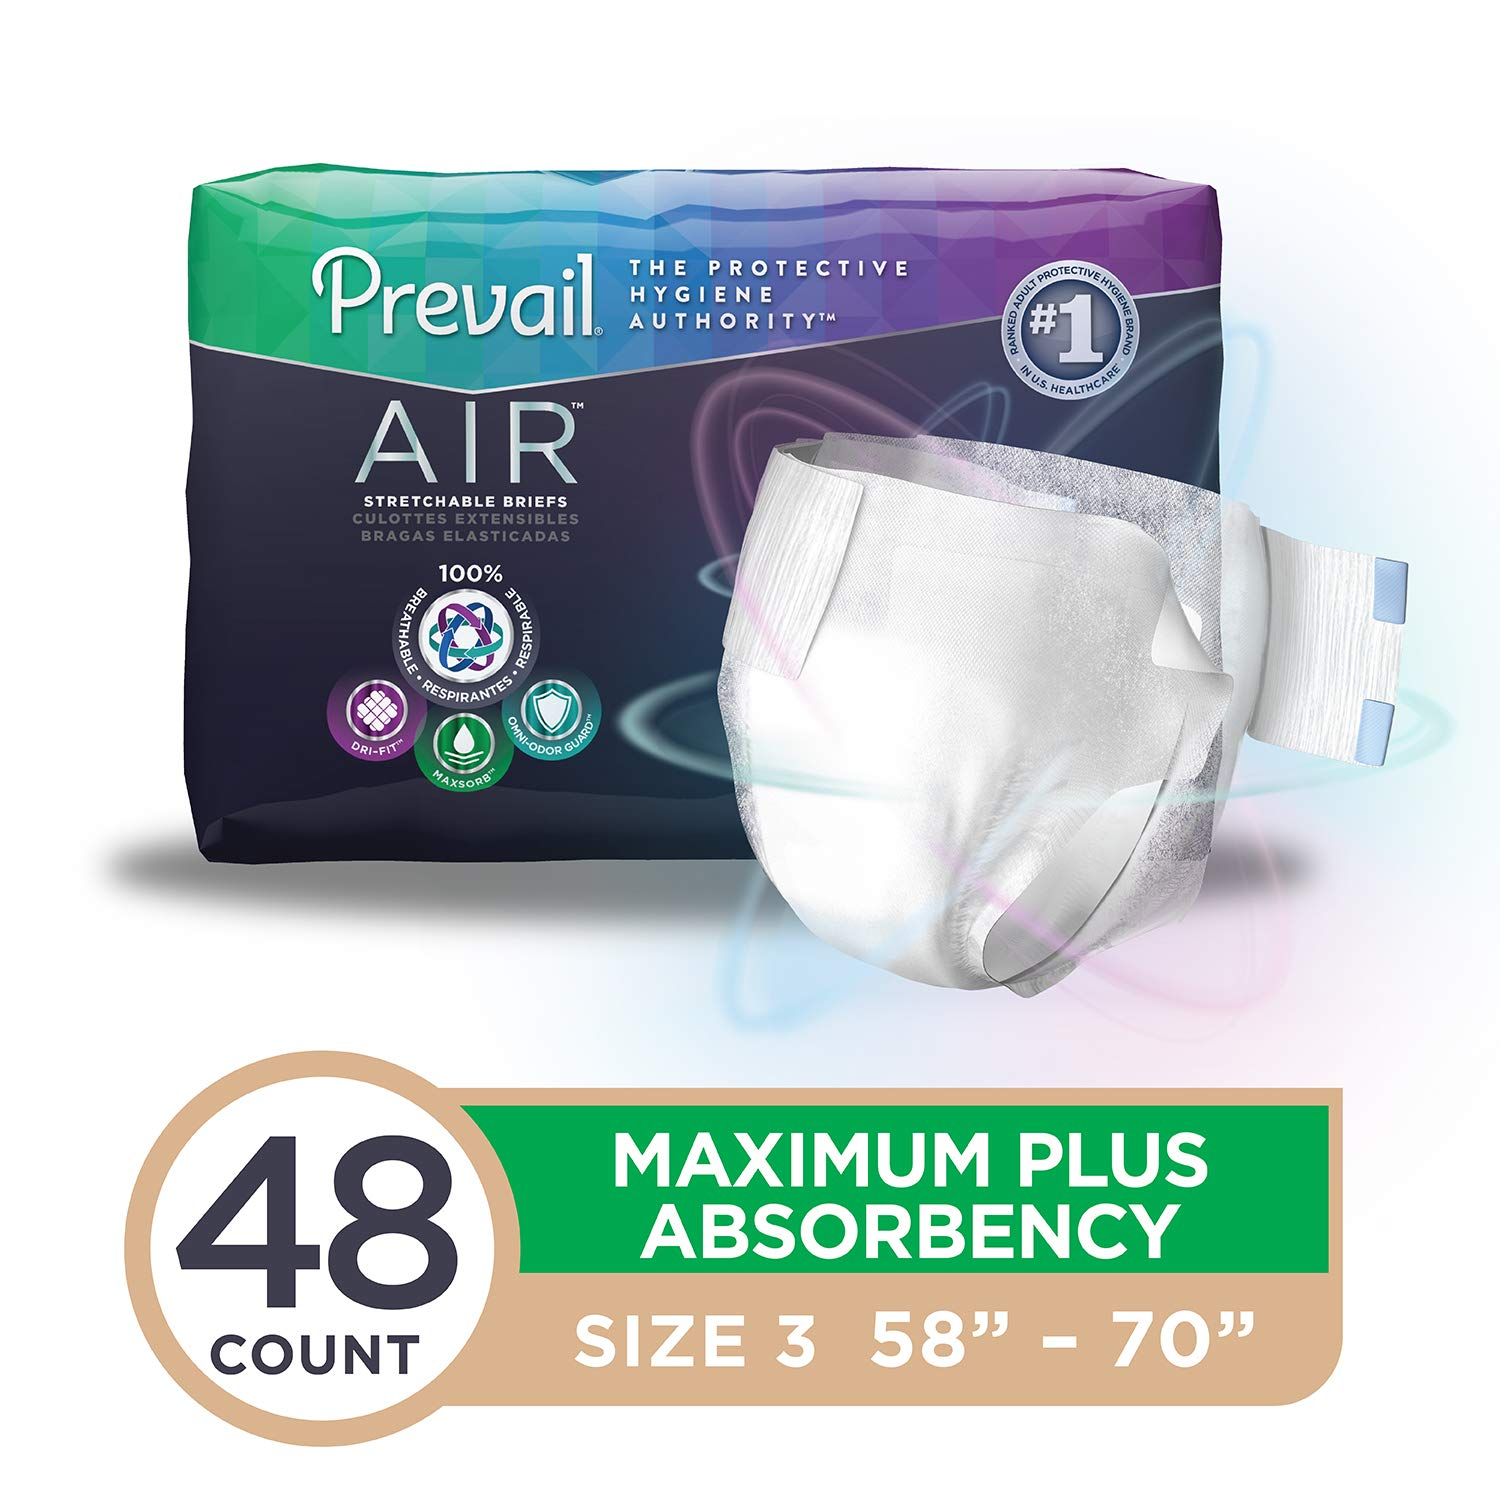 Amazon.com: Prevail Air Maximum Plus Absorbency Stretchable Incontinence Briefs/Adult Diapers Size 3 - 48 Count Breathable Rapid Absorption Discreet Comfort ...